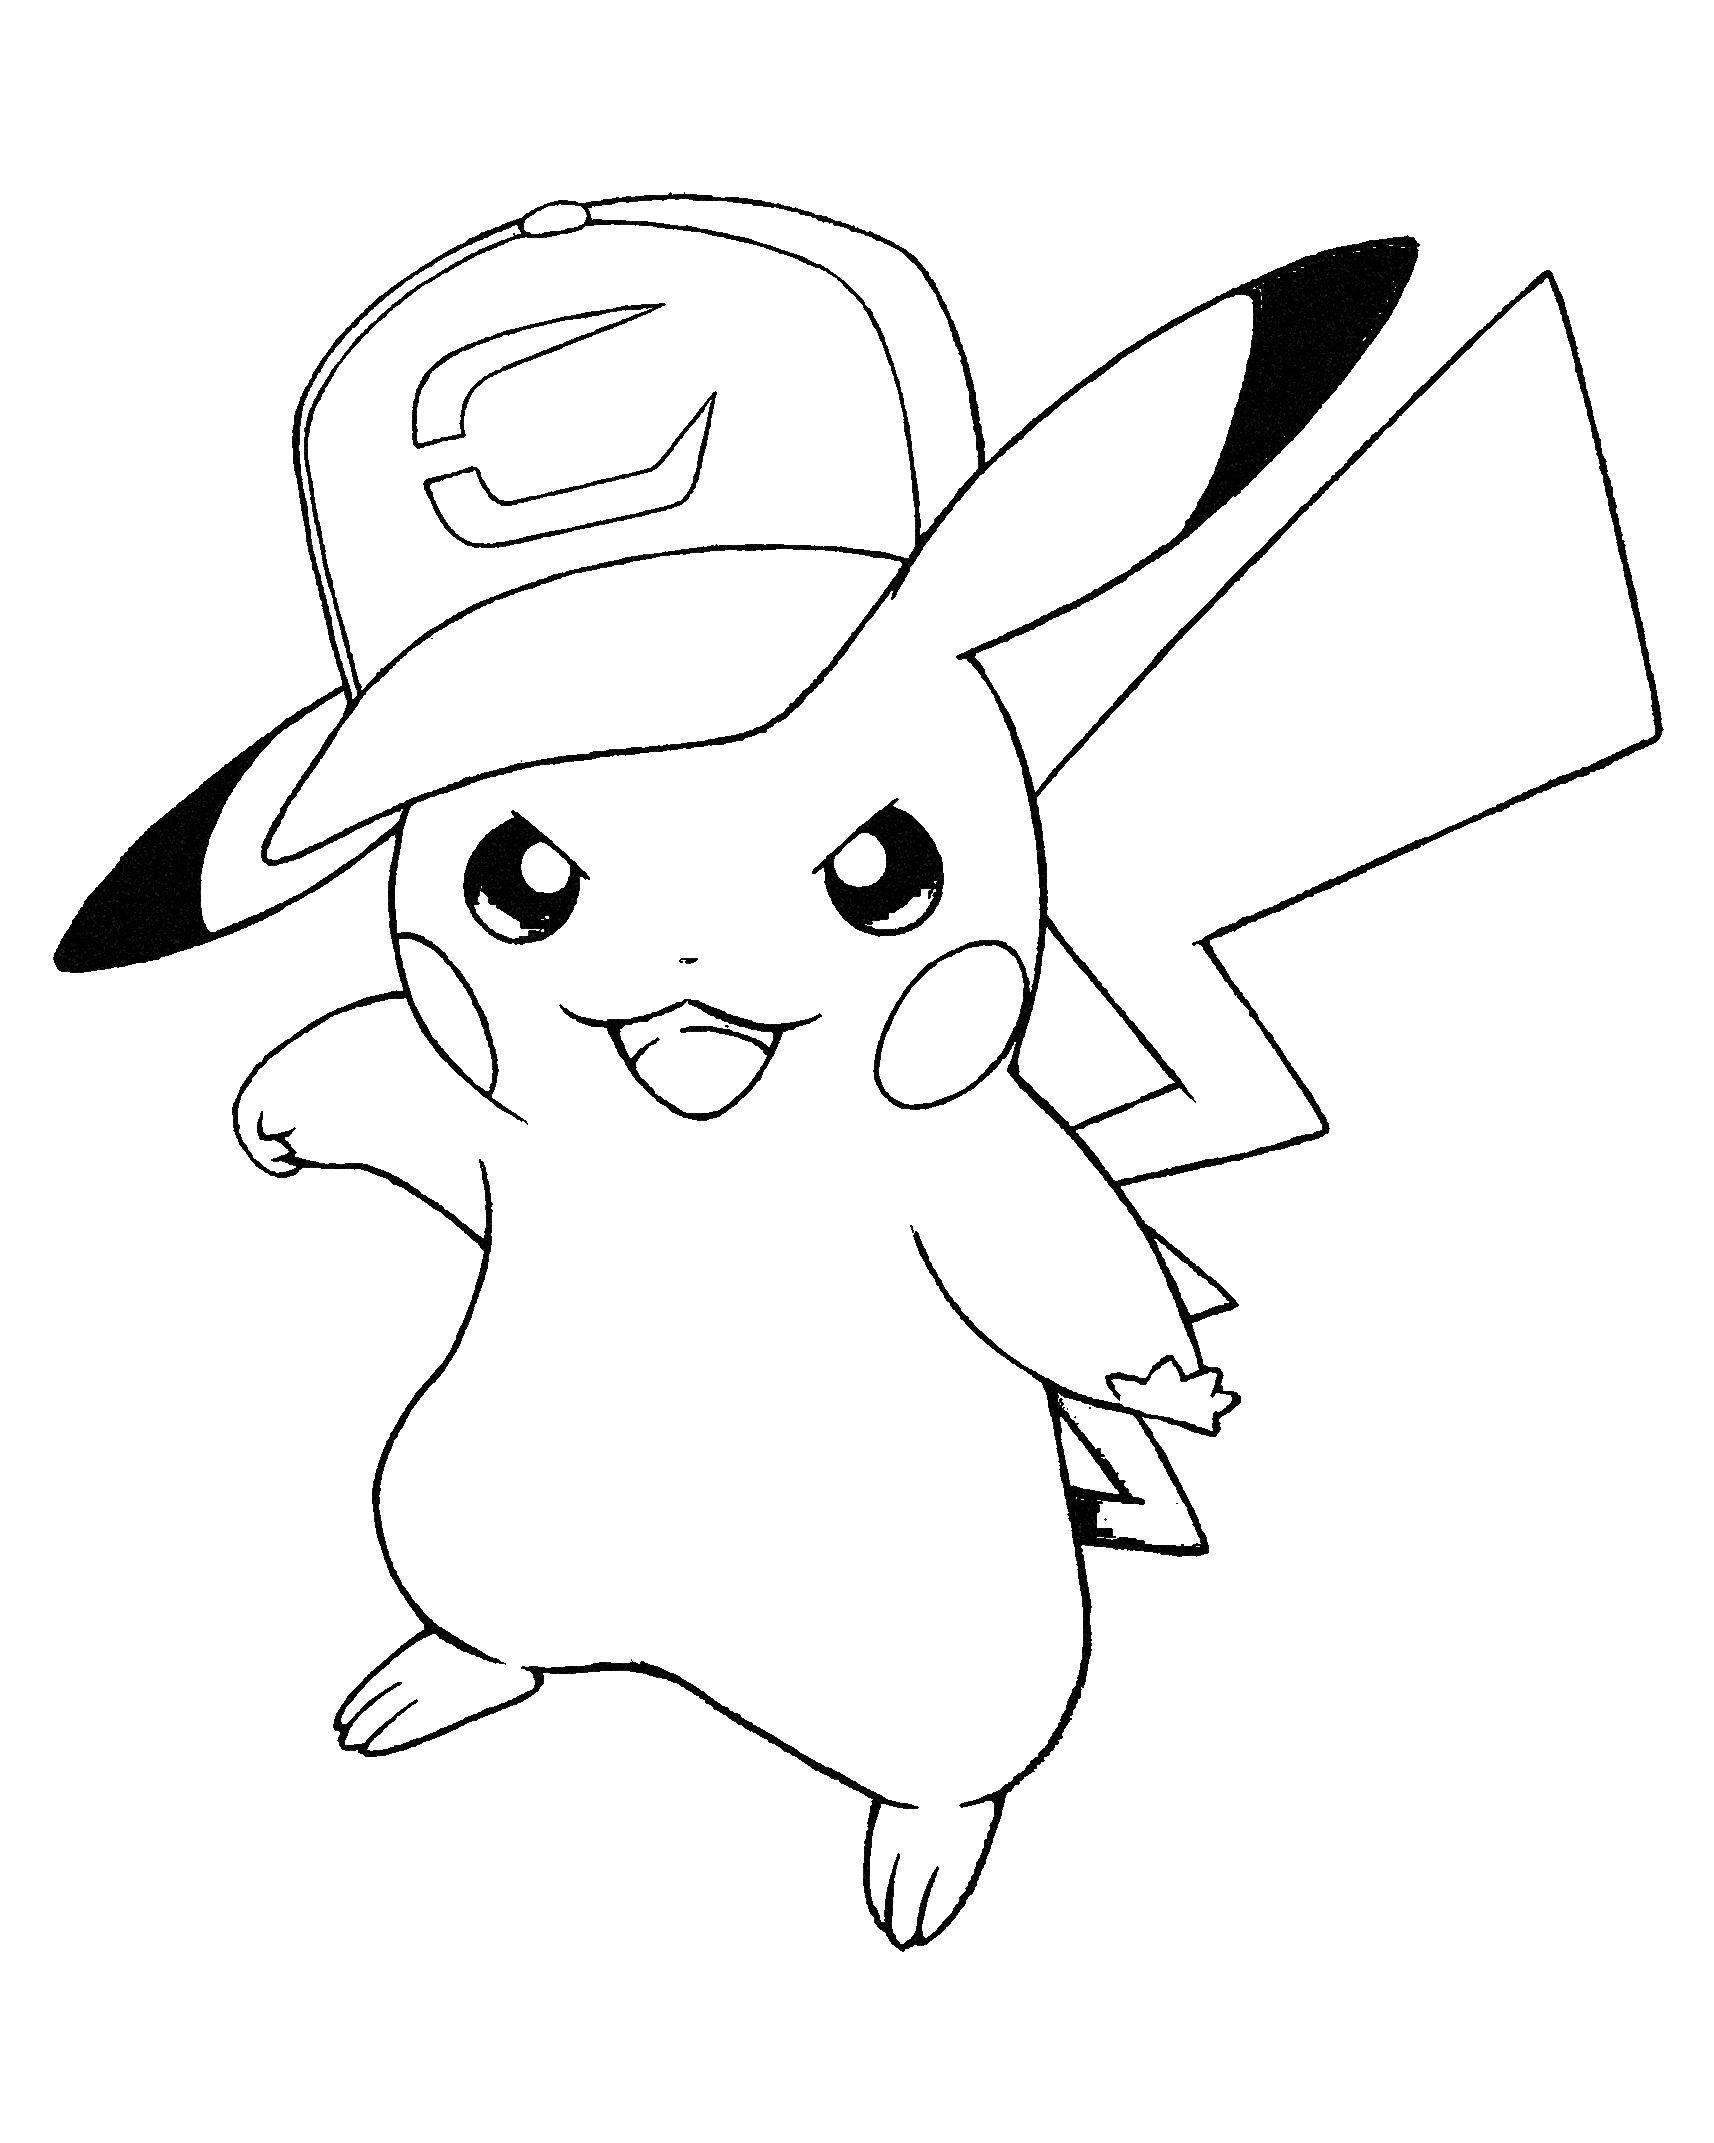 coloring pikachu 10 free pikachu coloring pages for kids pikachu coloring